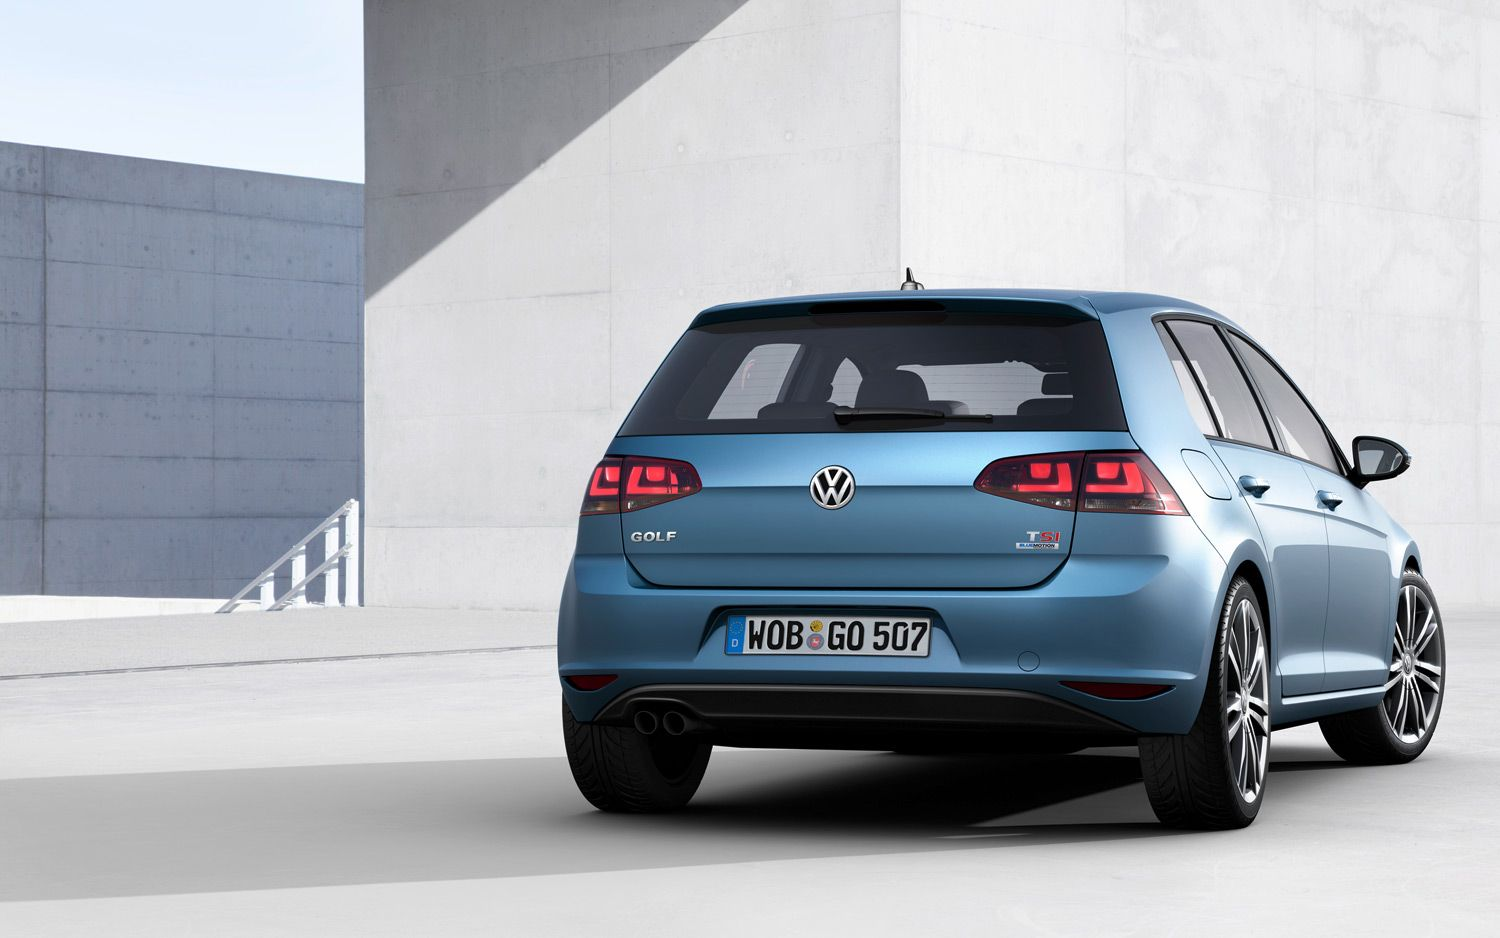 2014 Volkswagen Golf Rear1